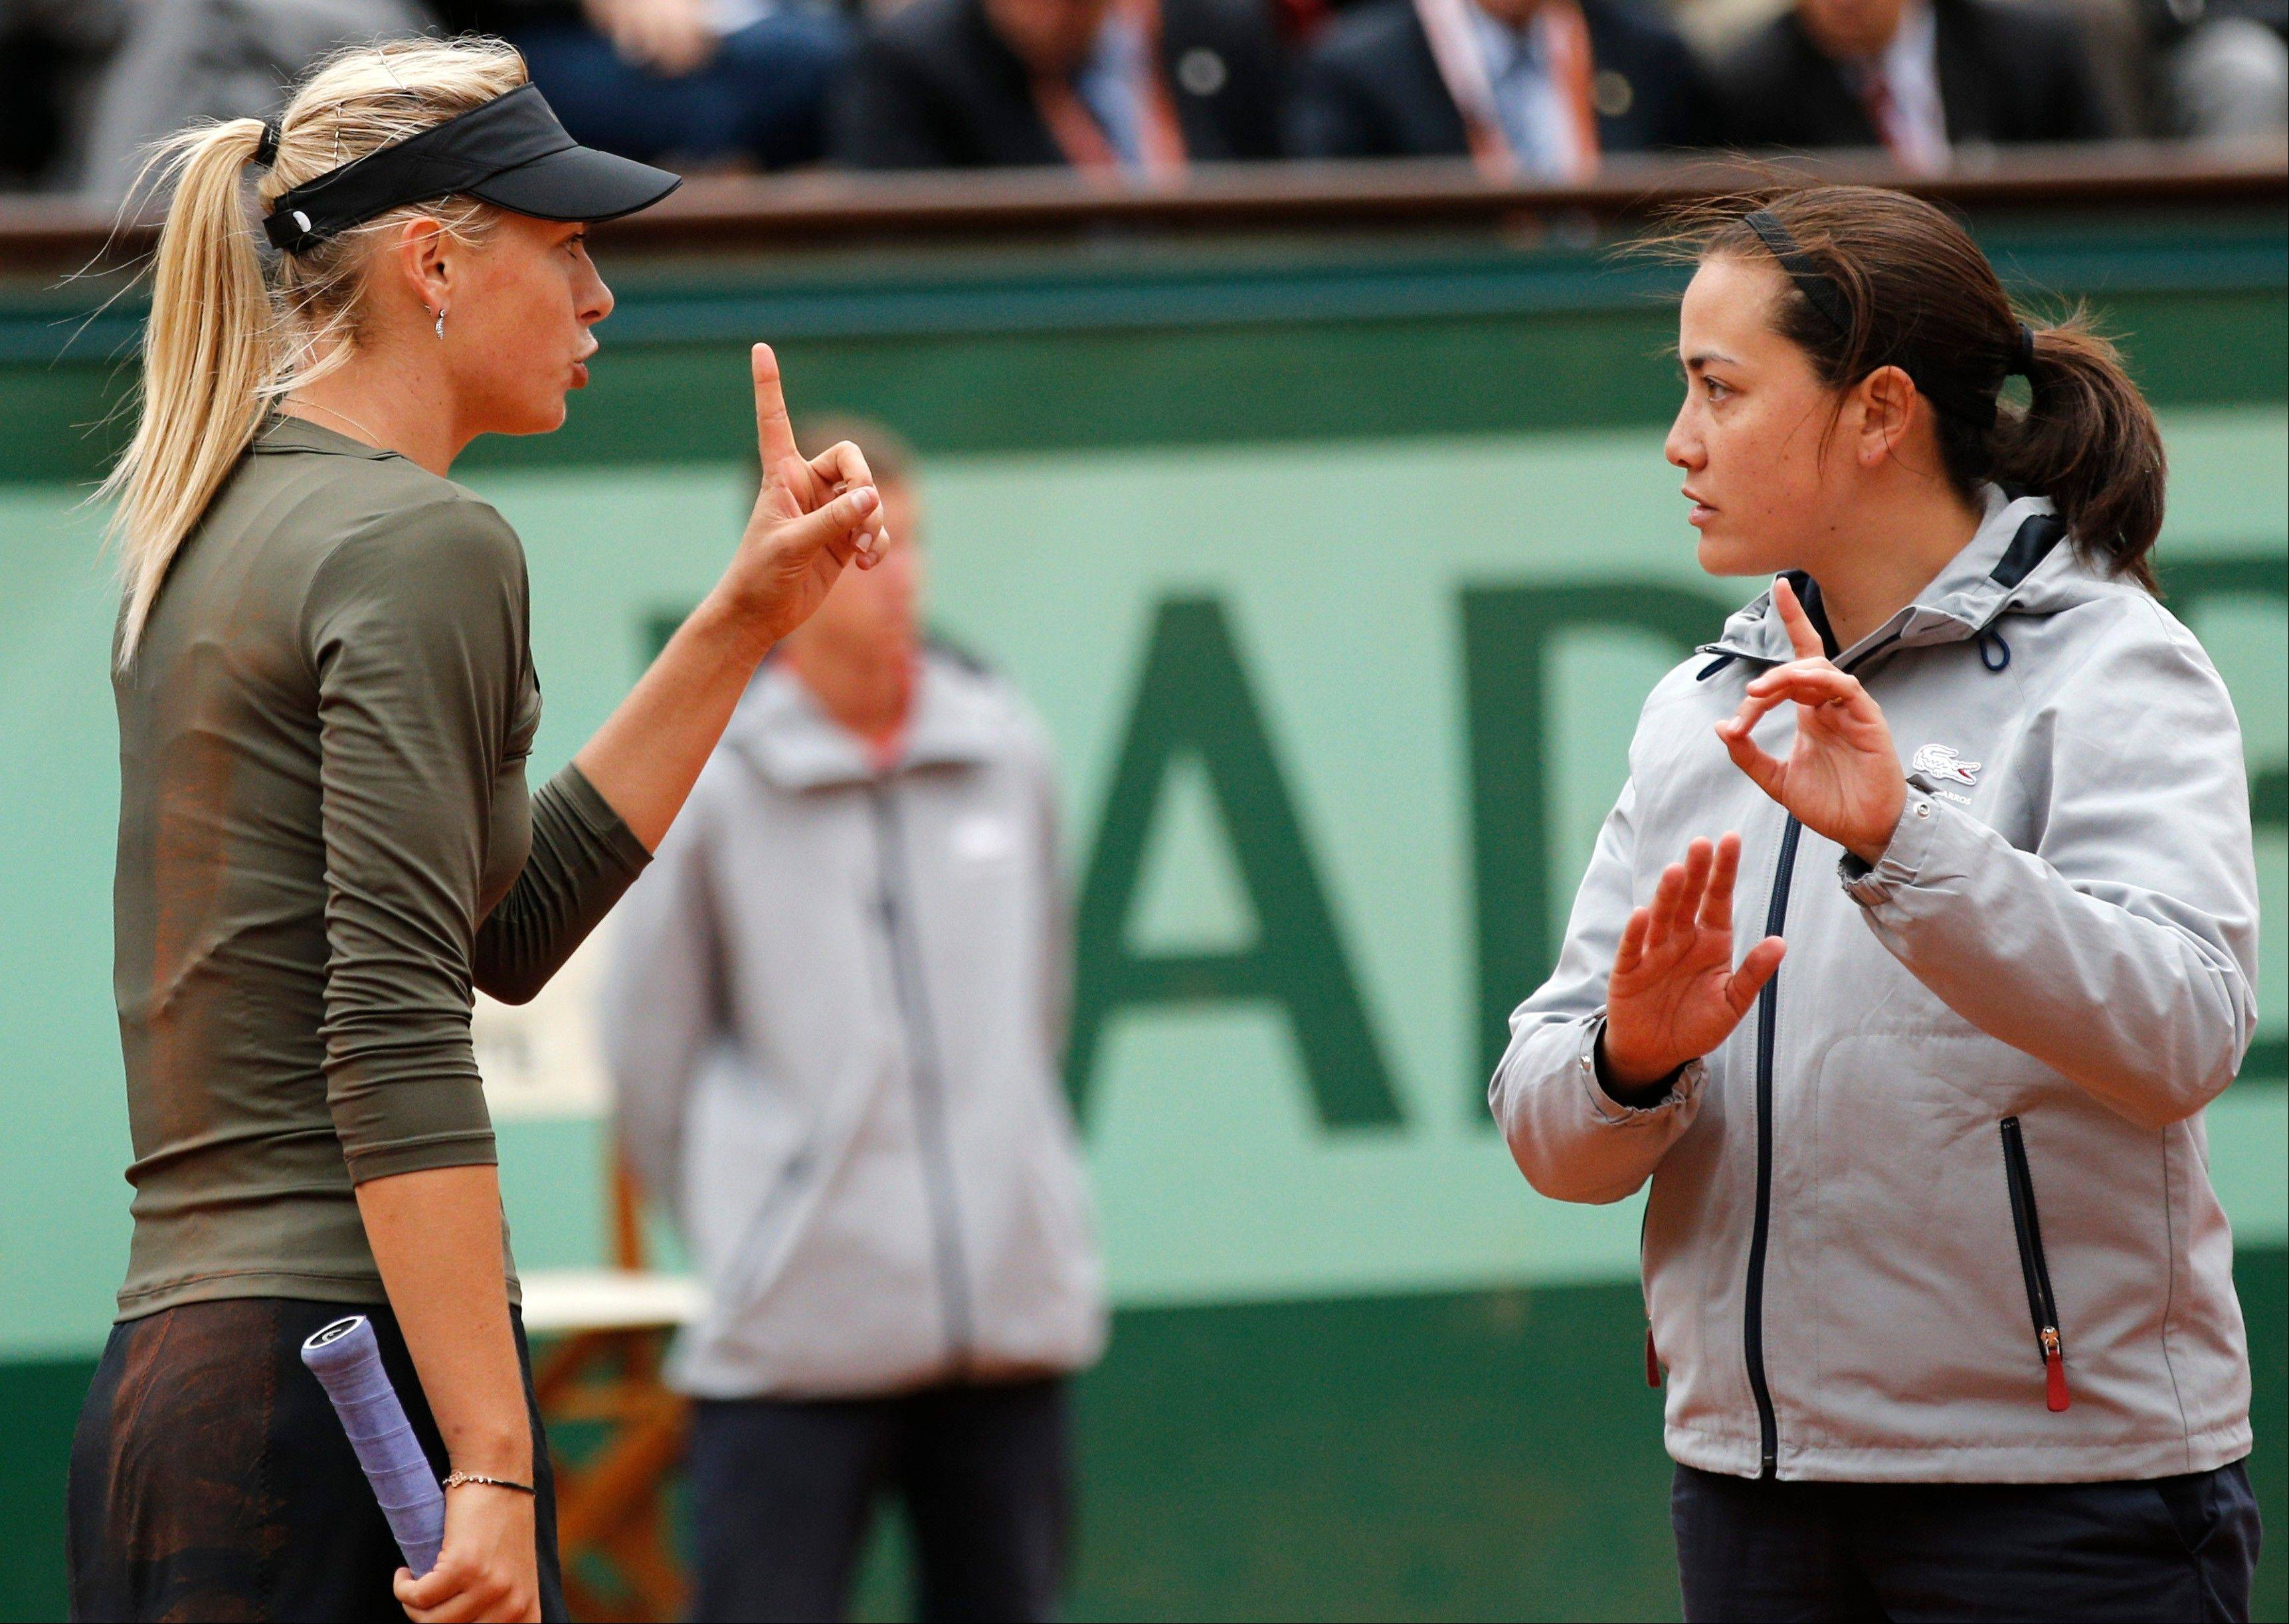 Russia's Maria Sharapova, left, argues with umpire Julie Minori Kjendlie, of Norway, as she plays Czech Republic's Klara Zakopalova during their fourth round match in the French Open tennis tournament Monday at the Roland Garros stadium in Paris.